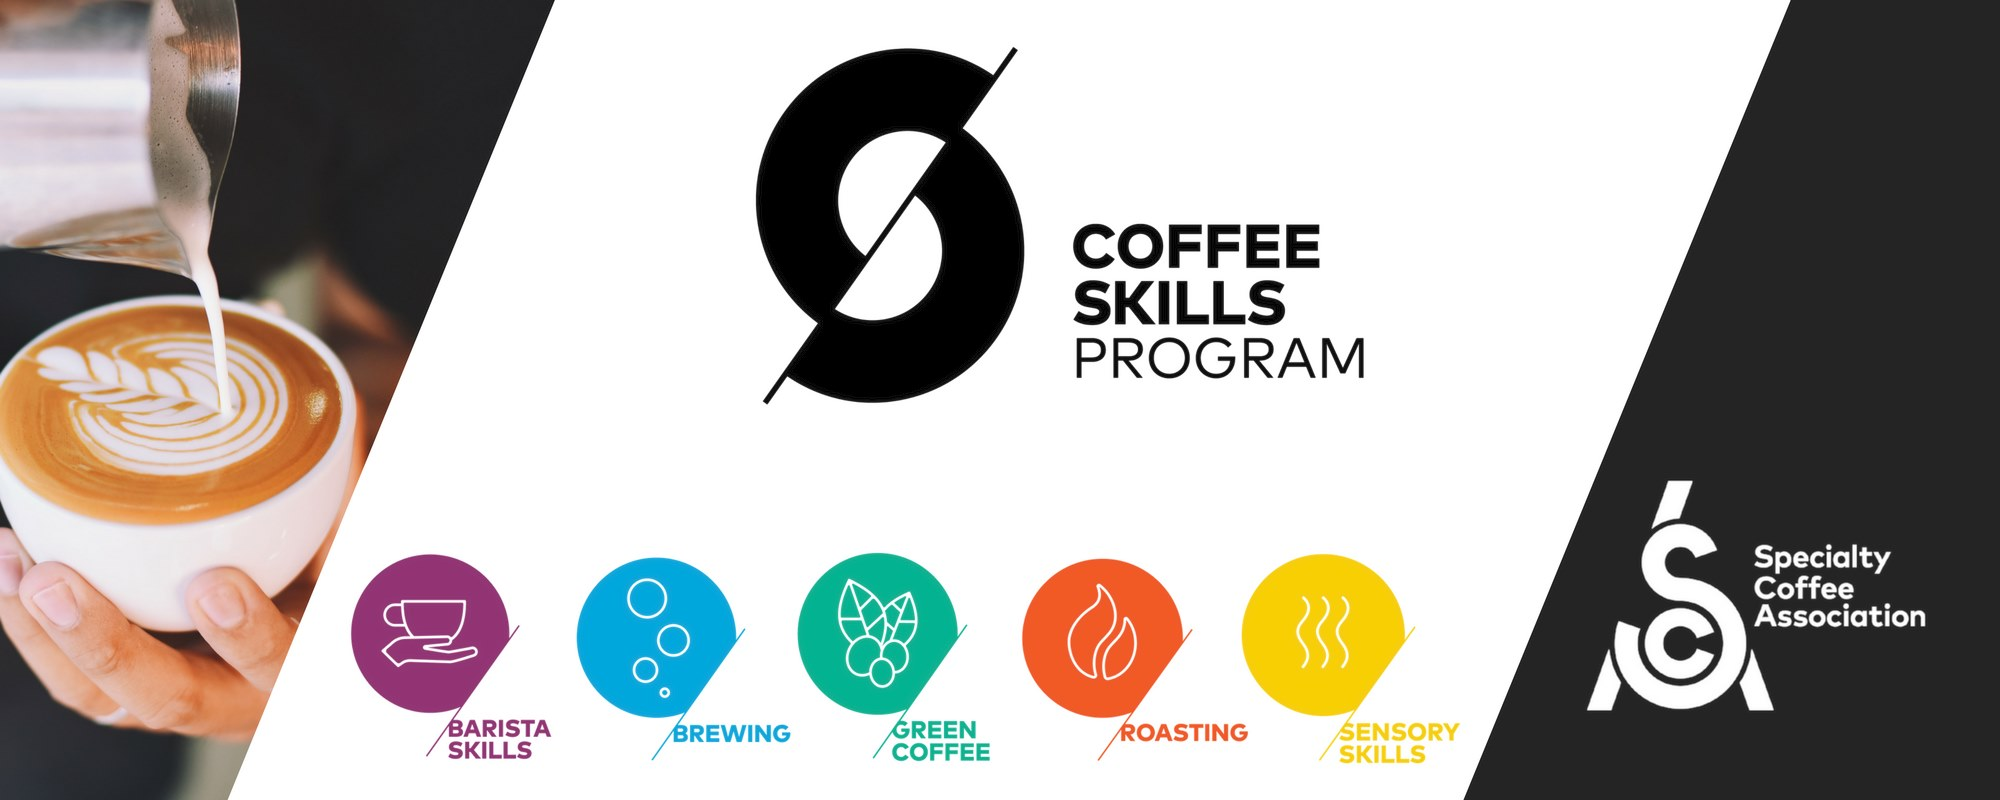 CSA-coffee-skills-program.-CSA-coffee-courses-Ireland-Copy